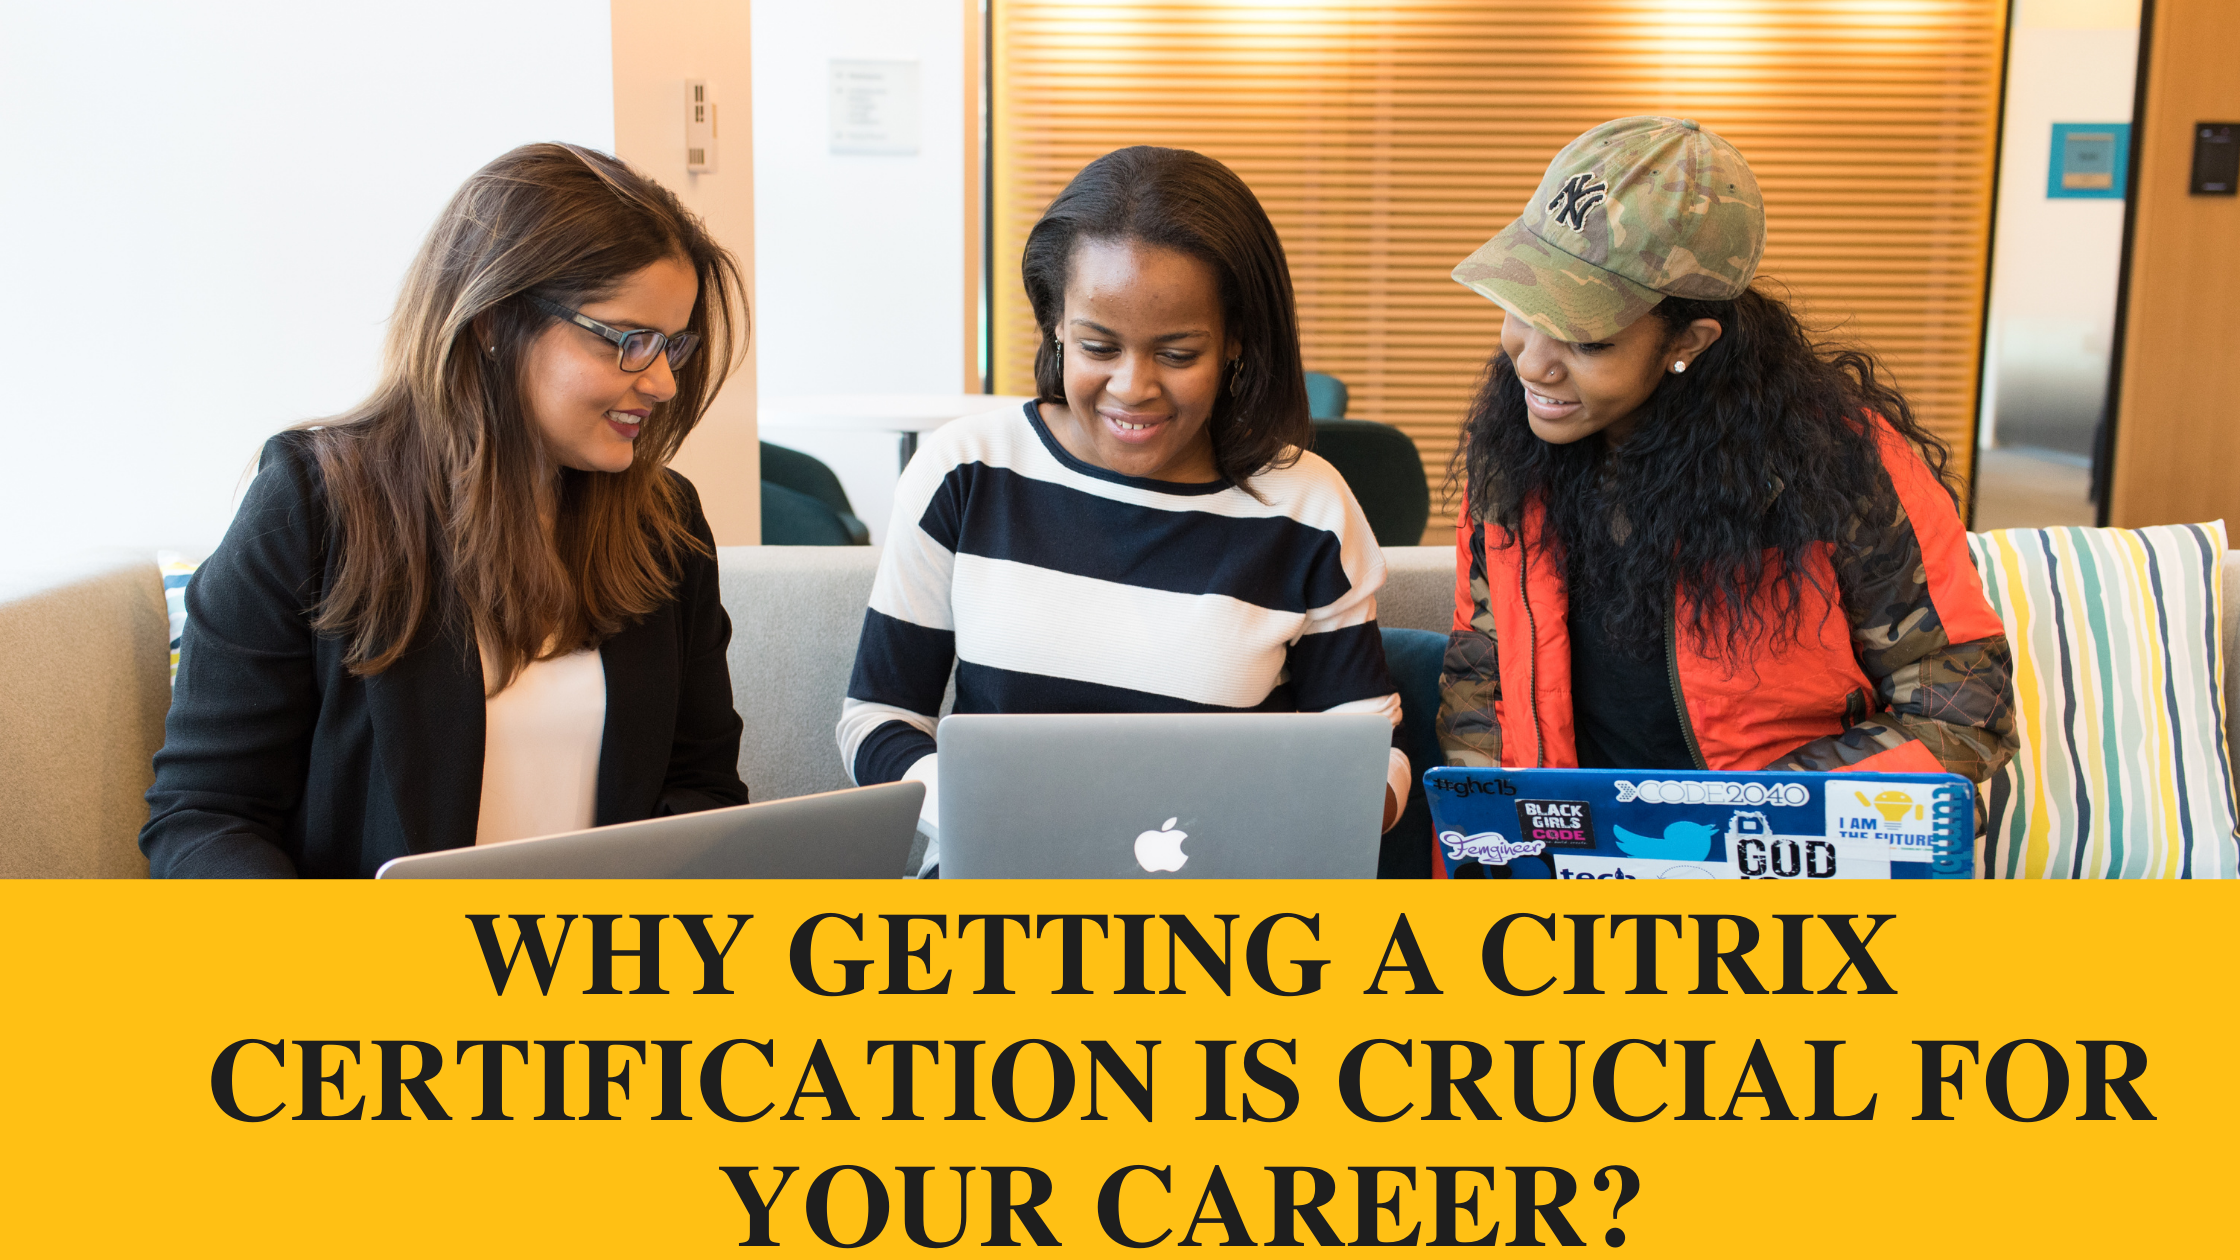 Why getting a Citrix Certification is Significant for Your Career